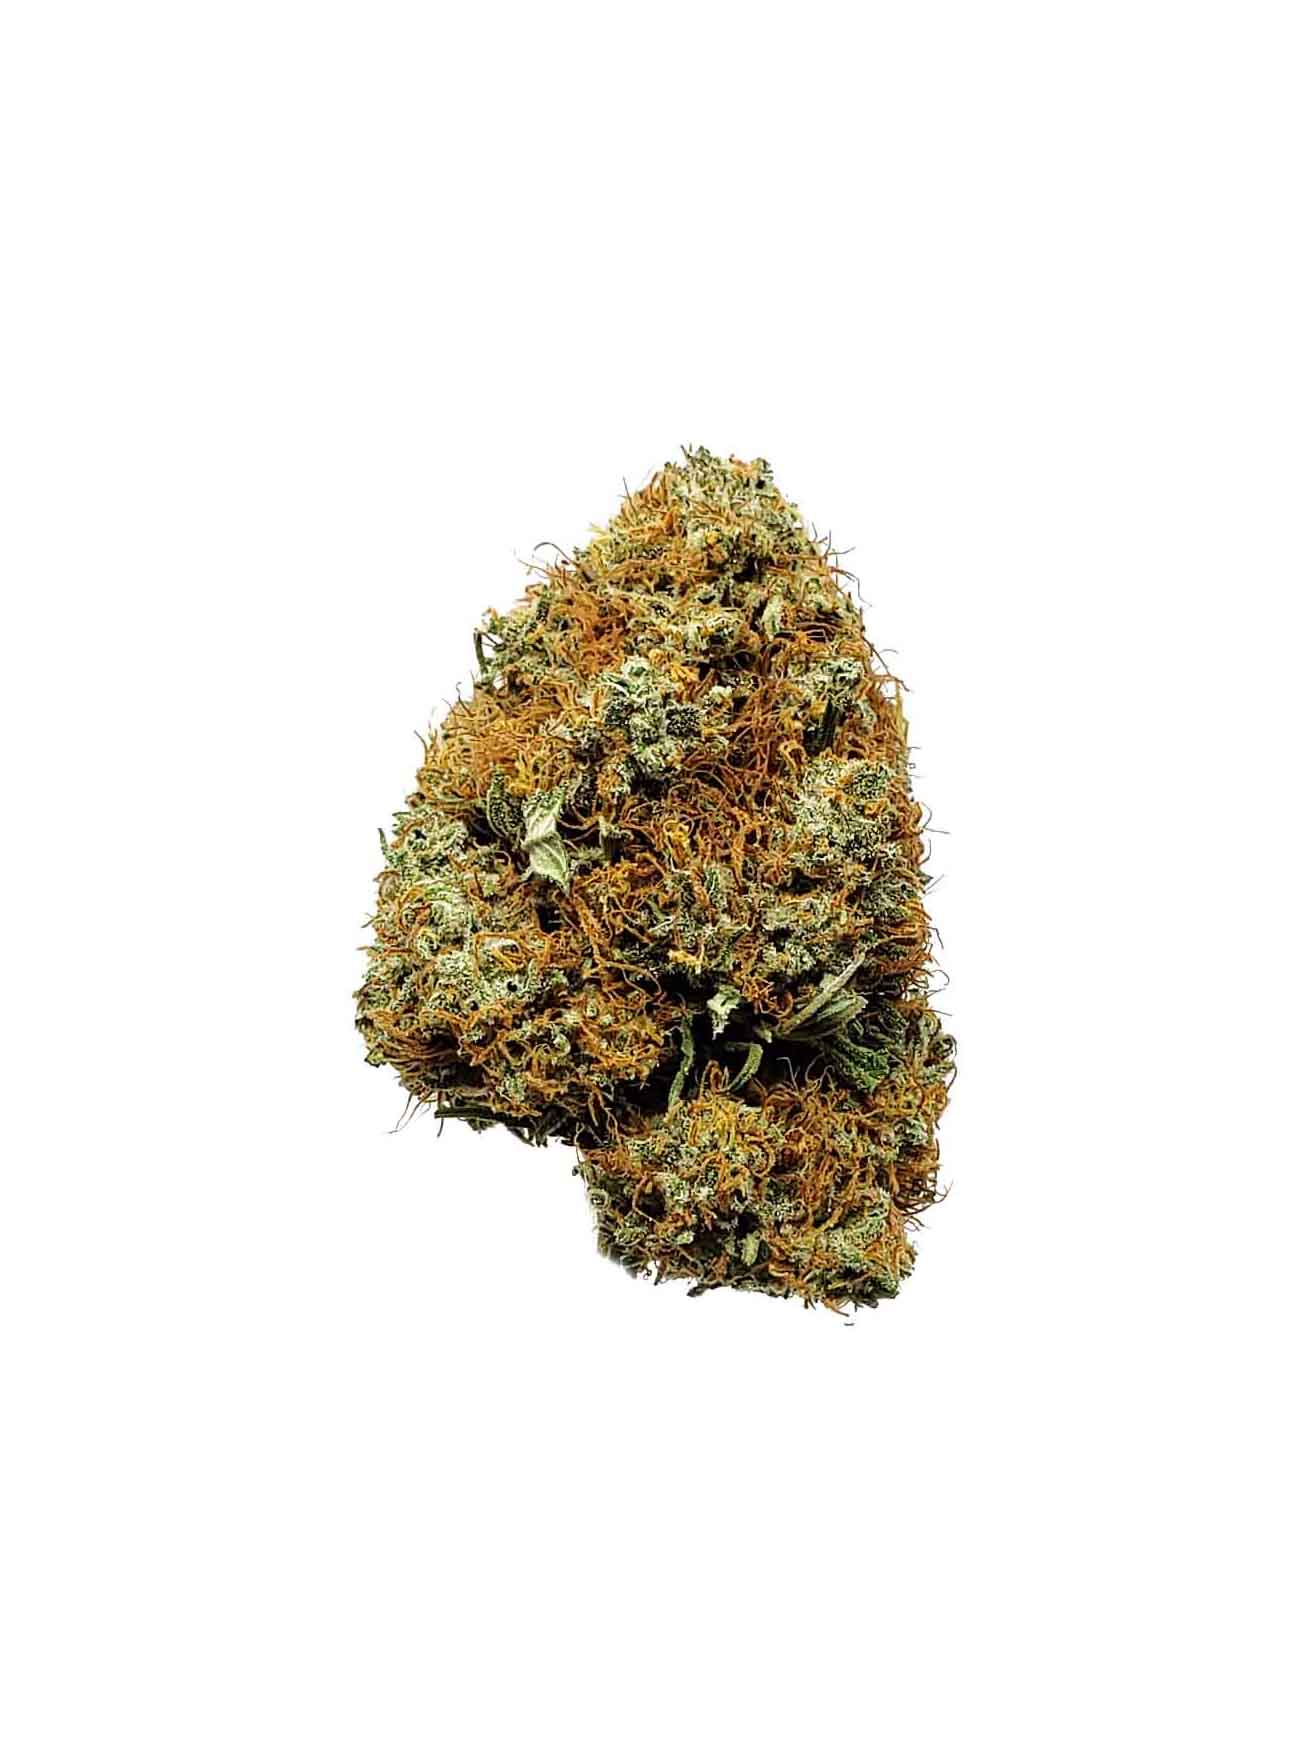 /oz *PROMO* Mango Kush by Bulk Buddy - Image © 2020 Bulk Buddy. All Rights Reserved.